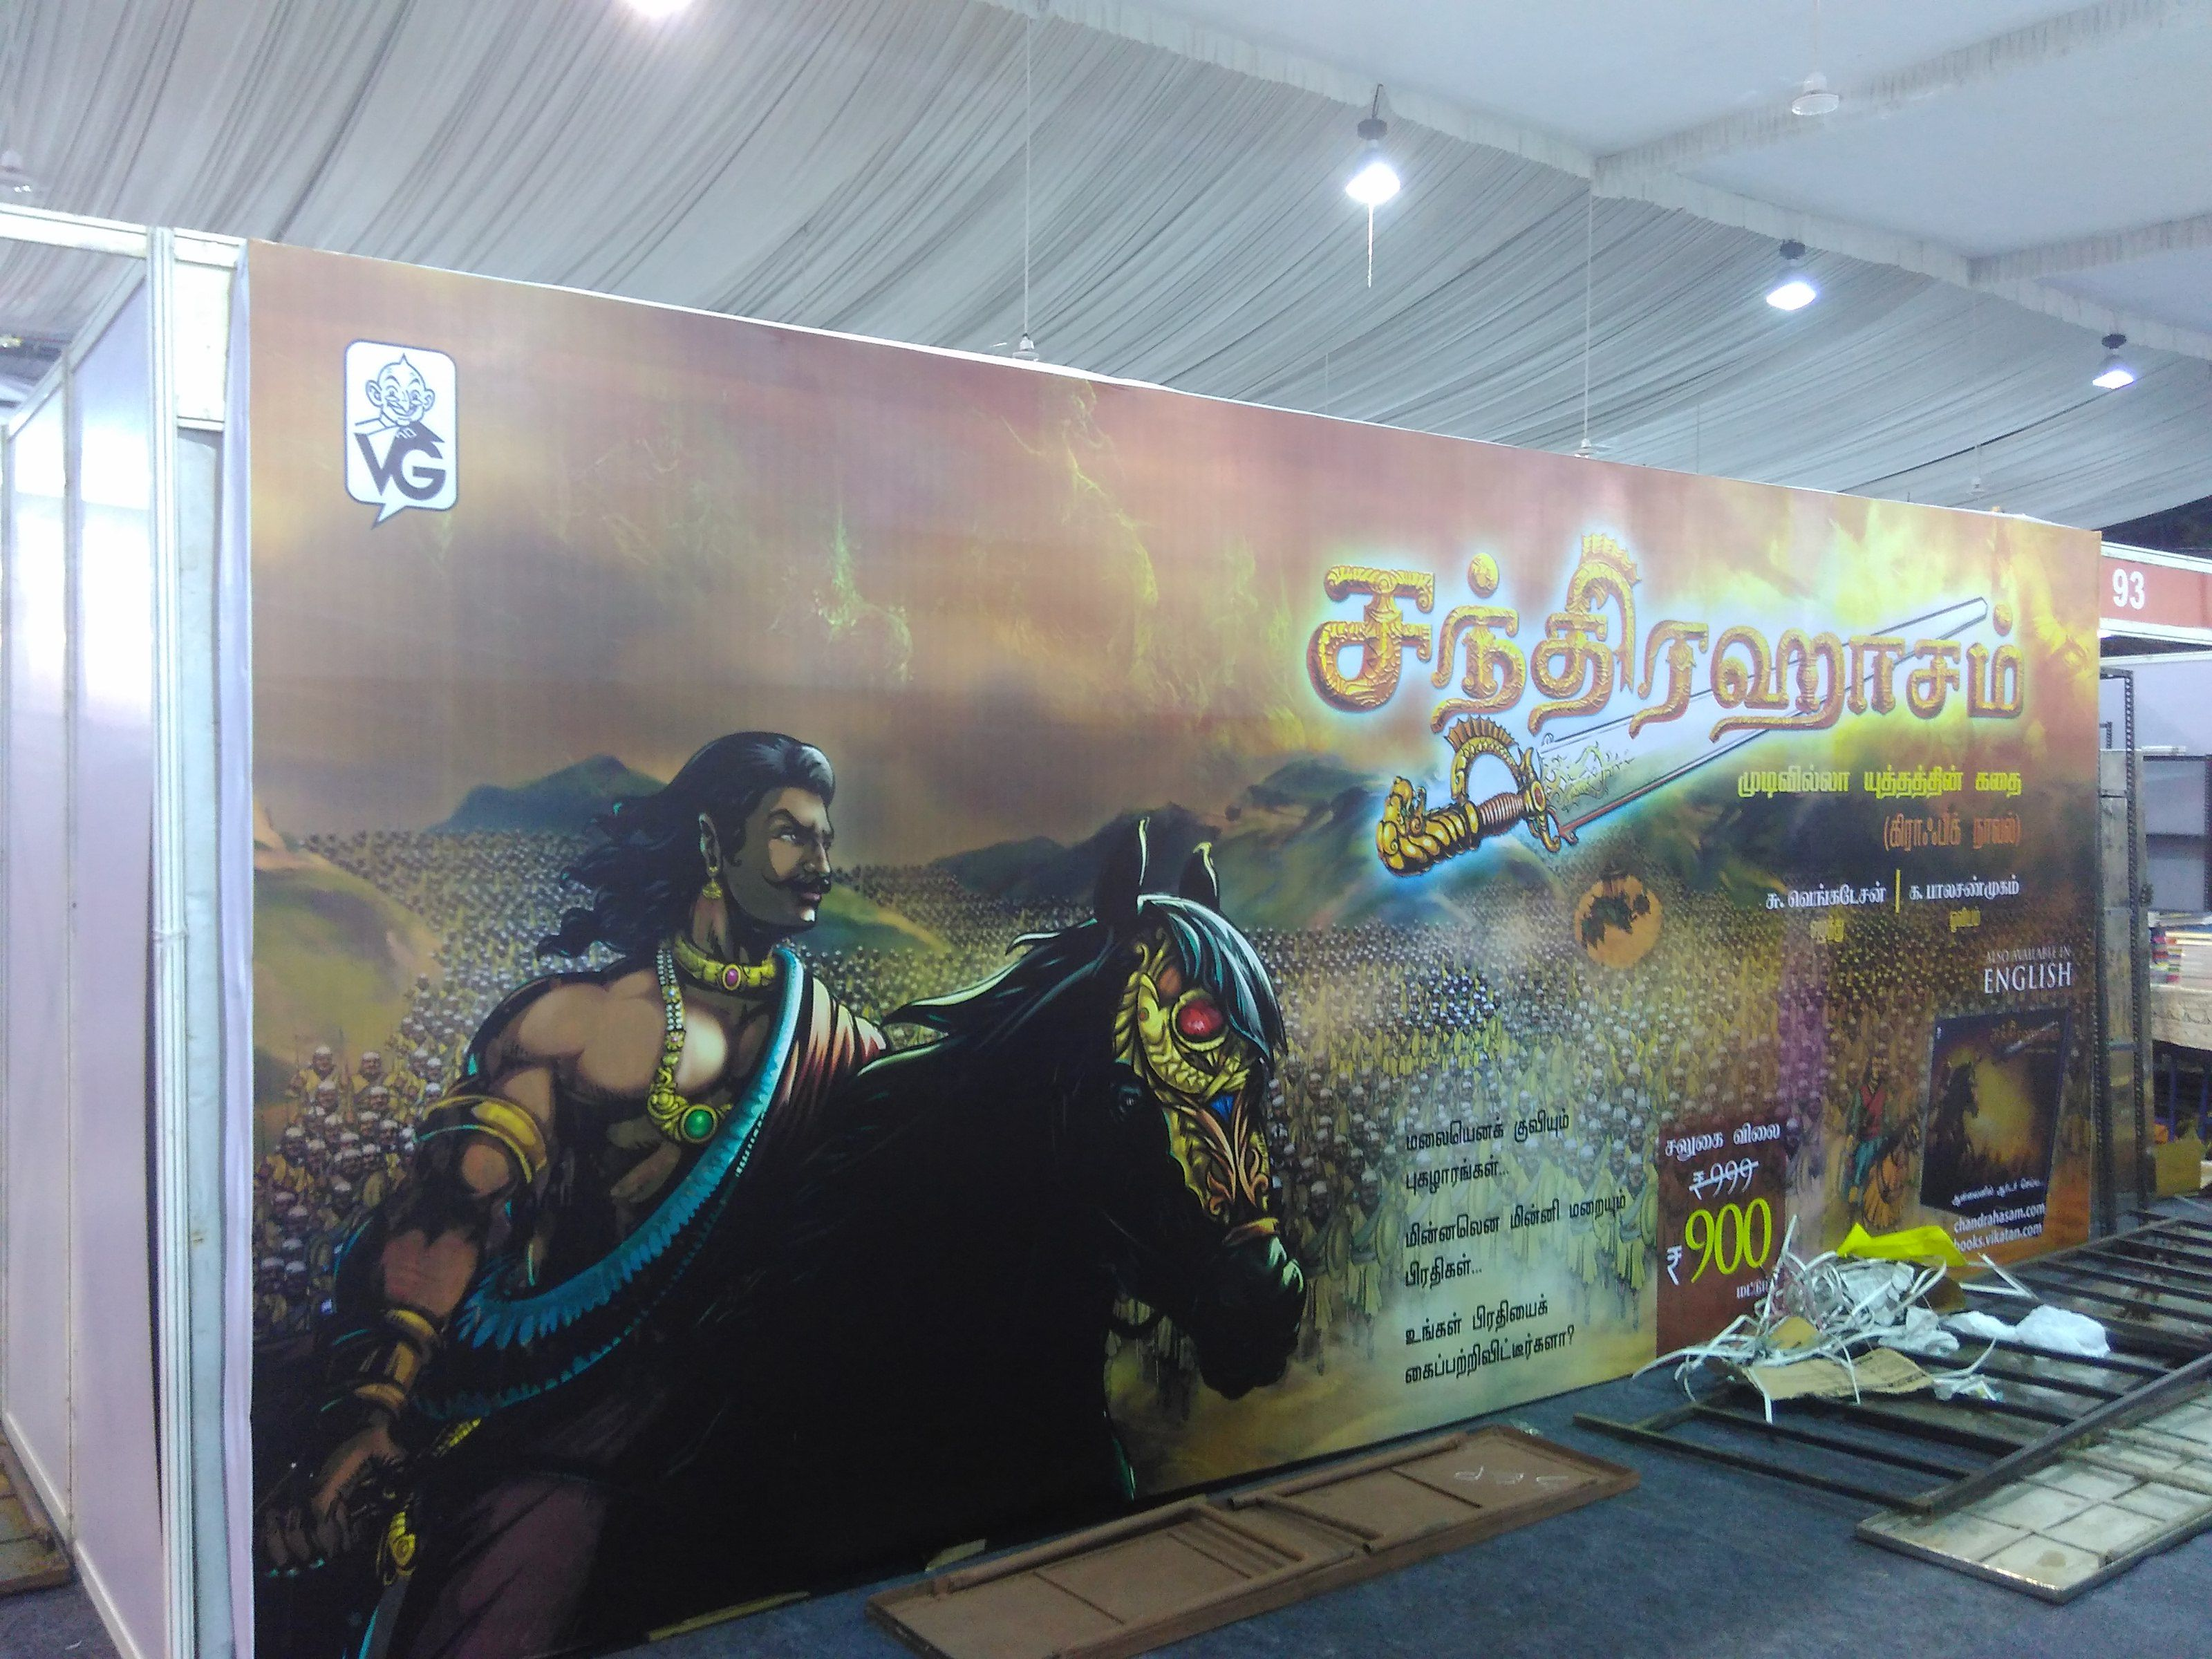 Chennai book fair 2016 - the vikadan group's chandrahasam